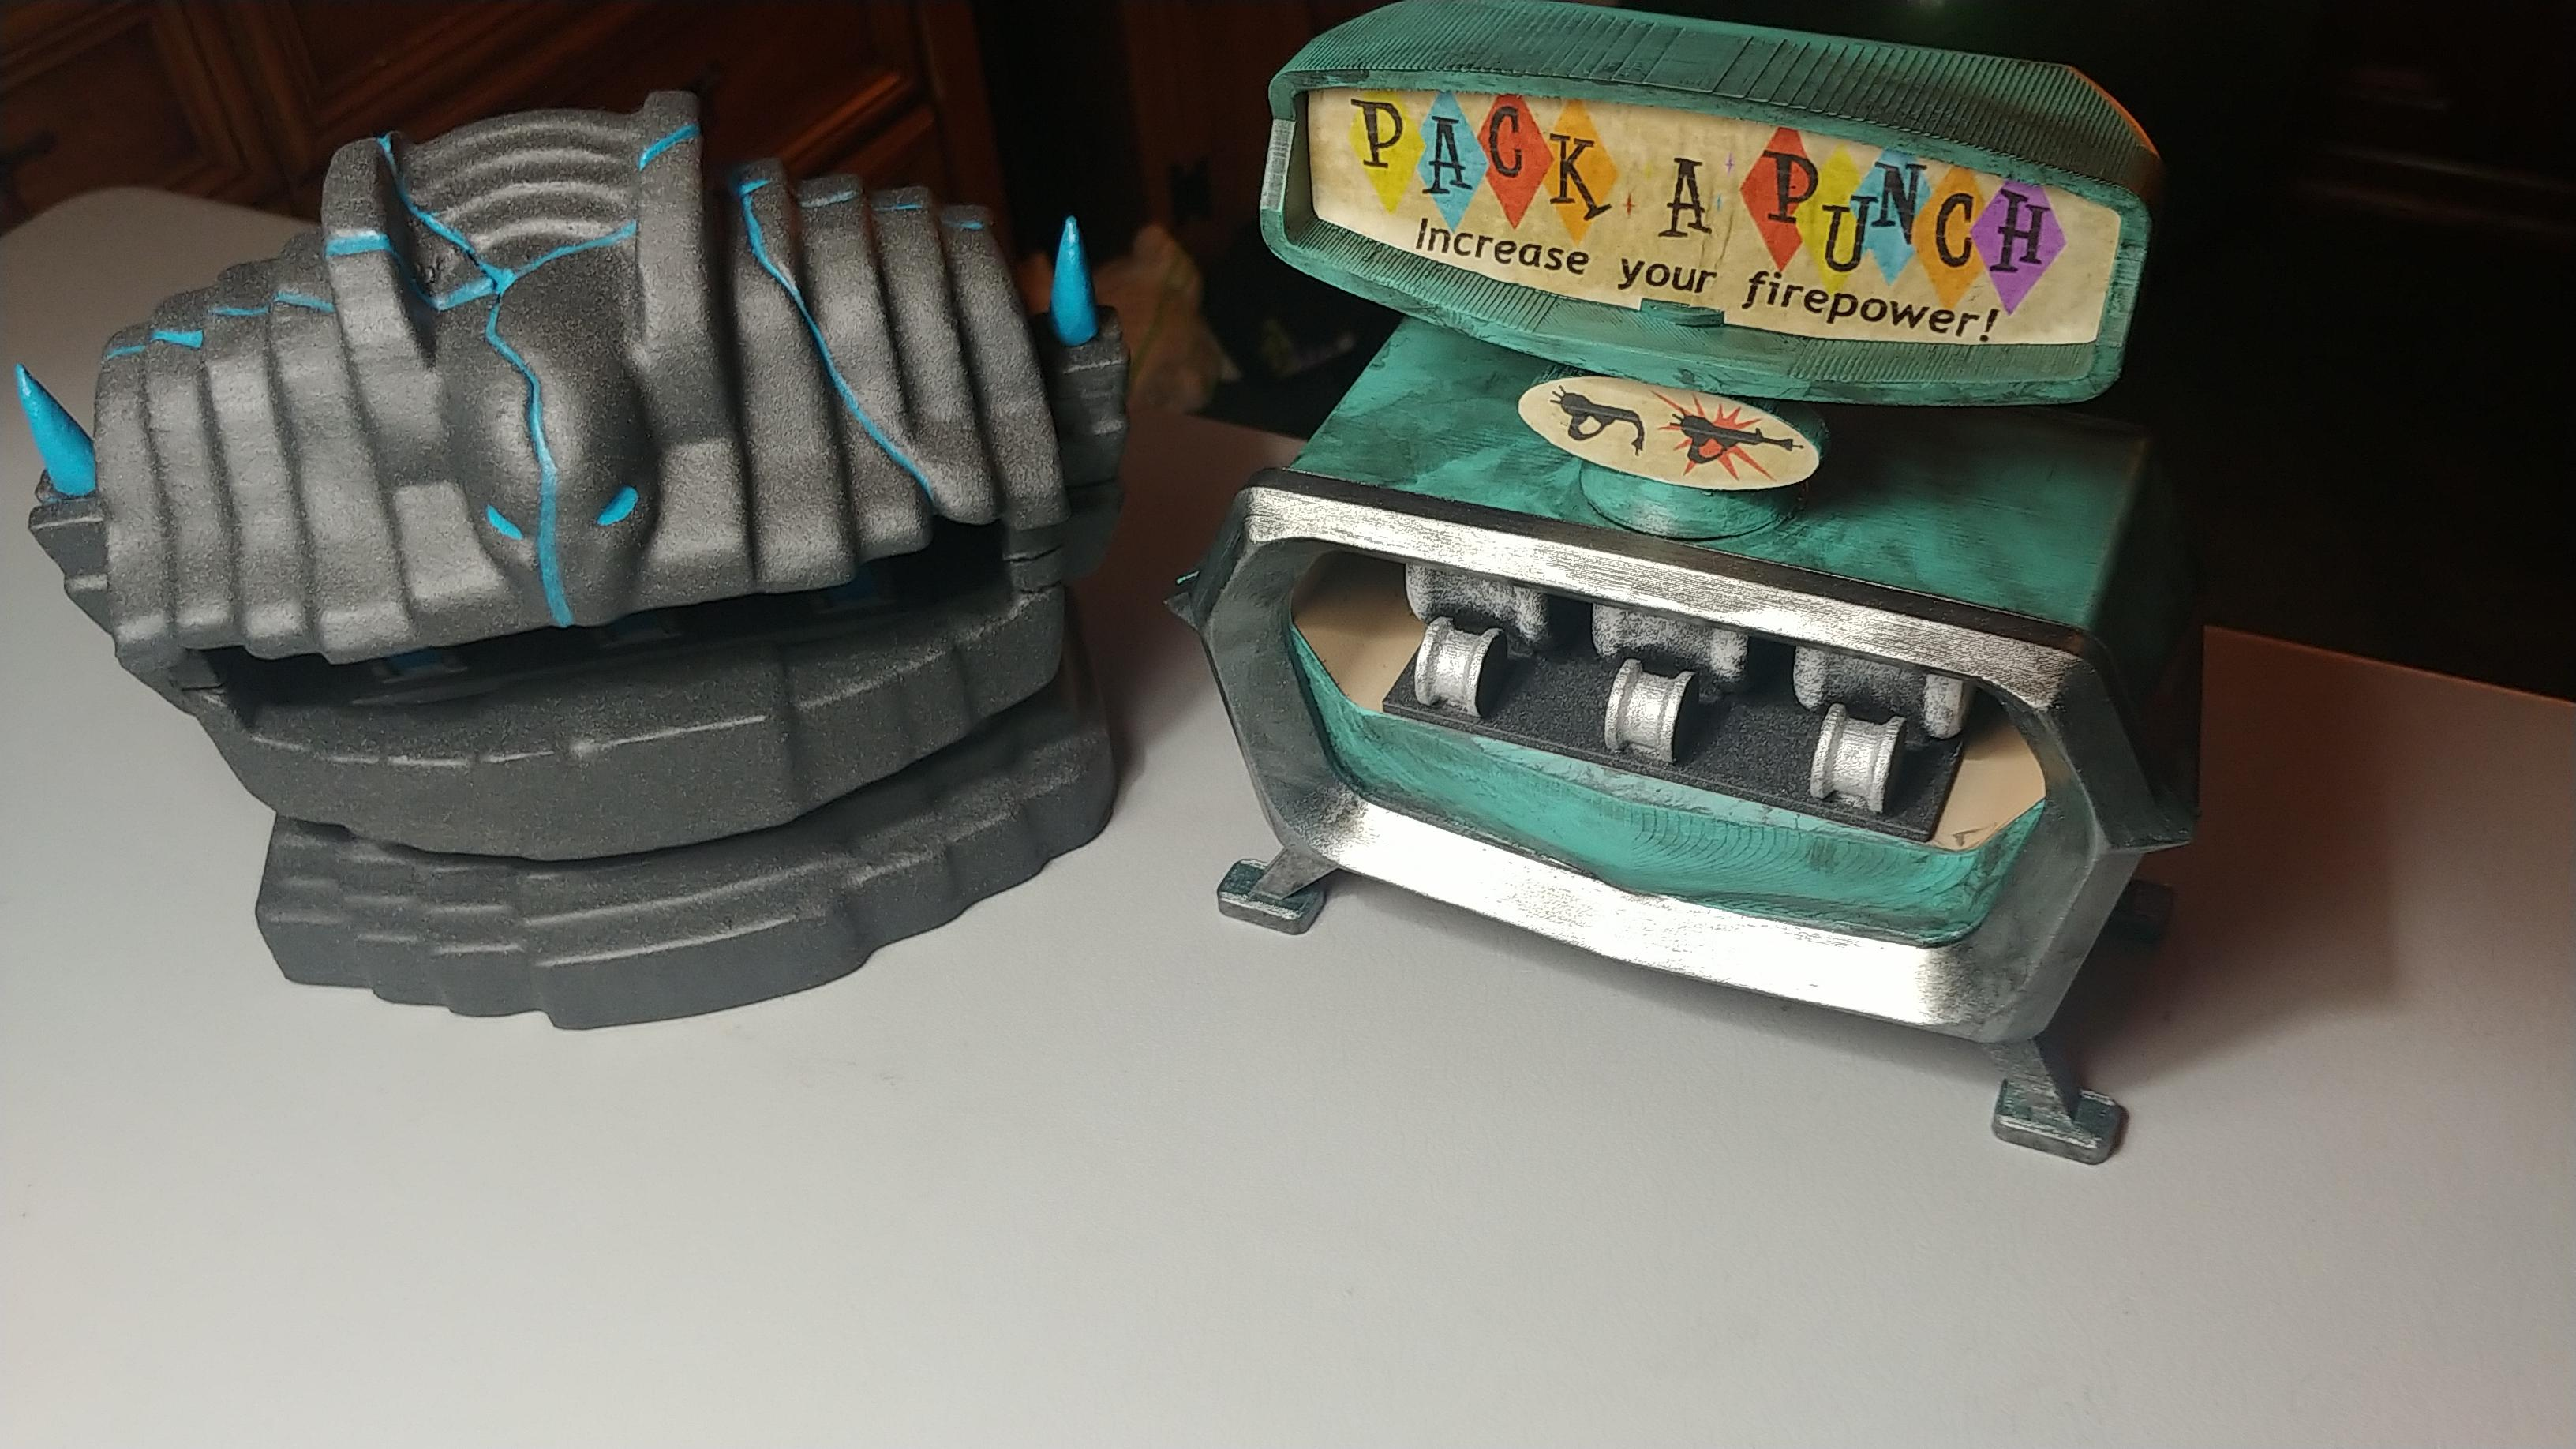 pack a punch machines complete both